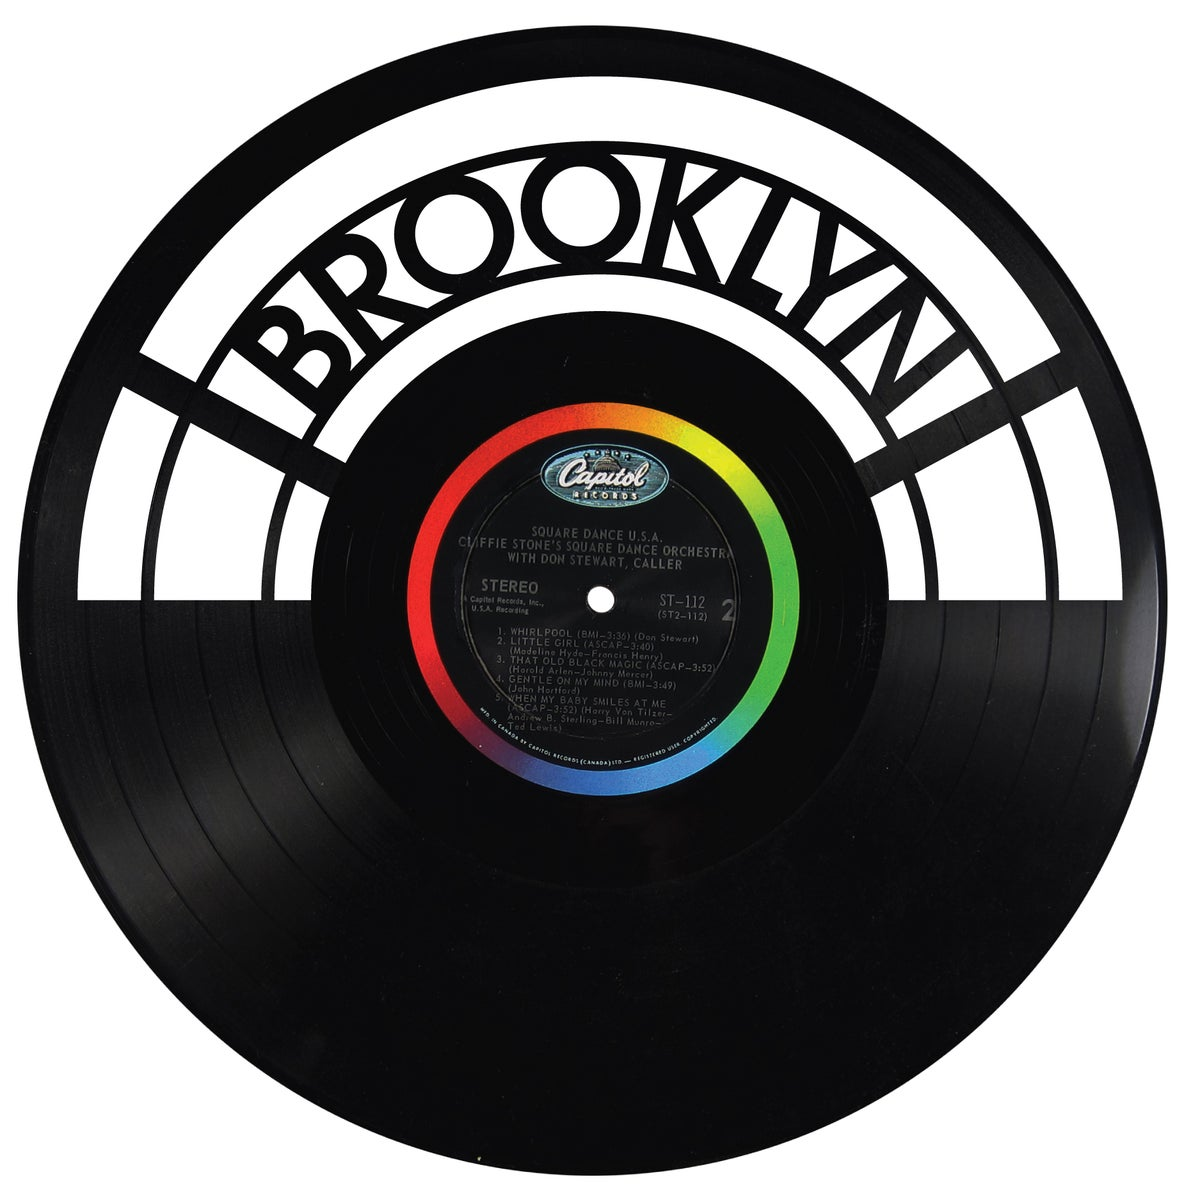 Wrecords By Monkey Laser Cut Record Wall Art